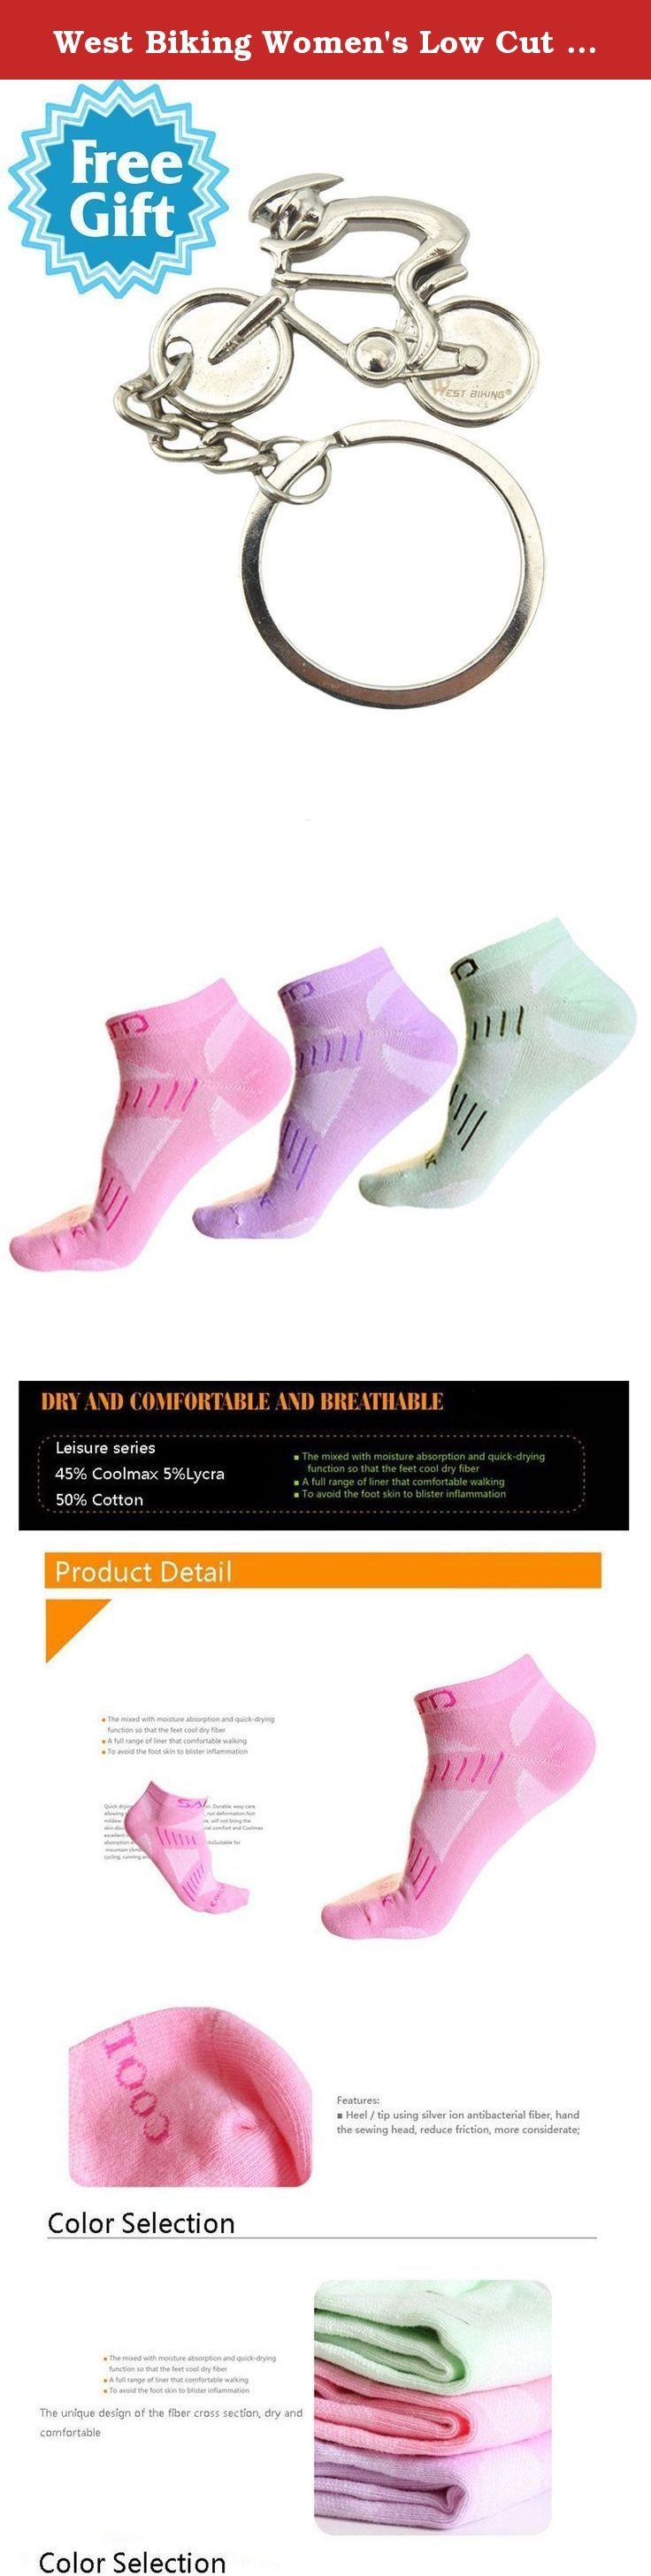 West Biking Women's Low Cut Cycling Socks Running Hiking Gym Training Socks. Sports Socks Details: Size: M (US 3.5-7/UK 2.5-6) Suitable Crowd: Women Color: Pink, Purple, Light Green Function: Moisture breathable, antibacterial deodorant Fabric: 45%COOLMAX/50%COTTON/5%LYCRA Application: Cycling, Hiking, Outdoor Sports, or every day socks. Features: Cool and comfortable breathable mesh, accelerating sweat Professional ankle socks bow weave makes feet more comfortable High density of the…